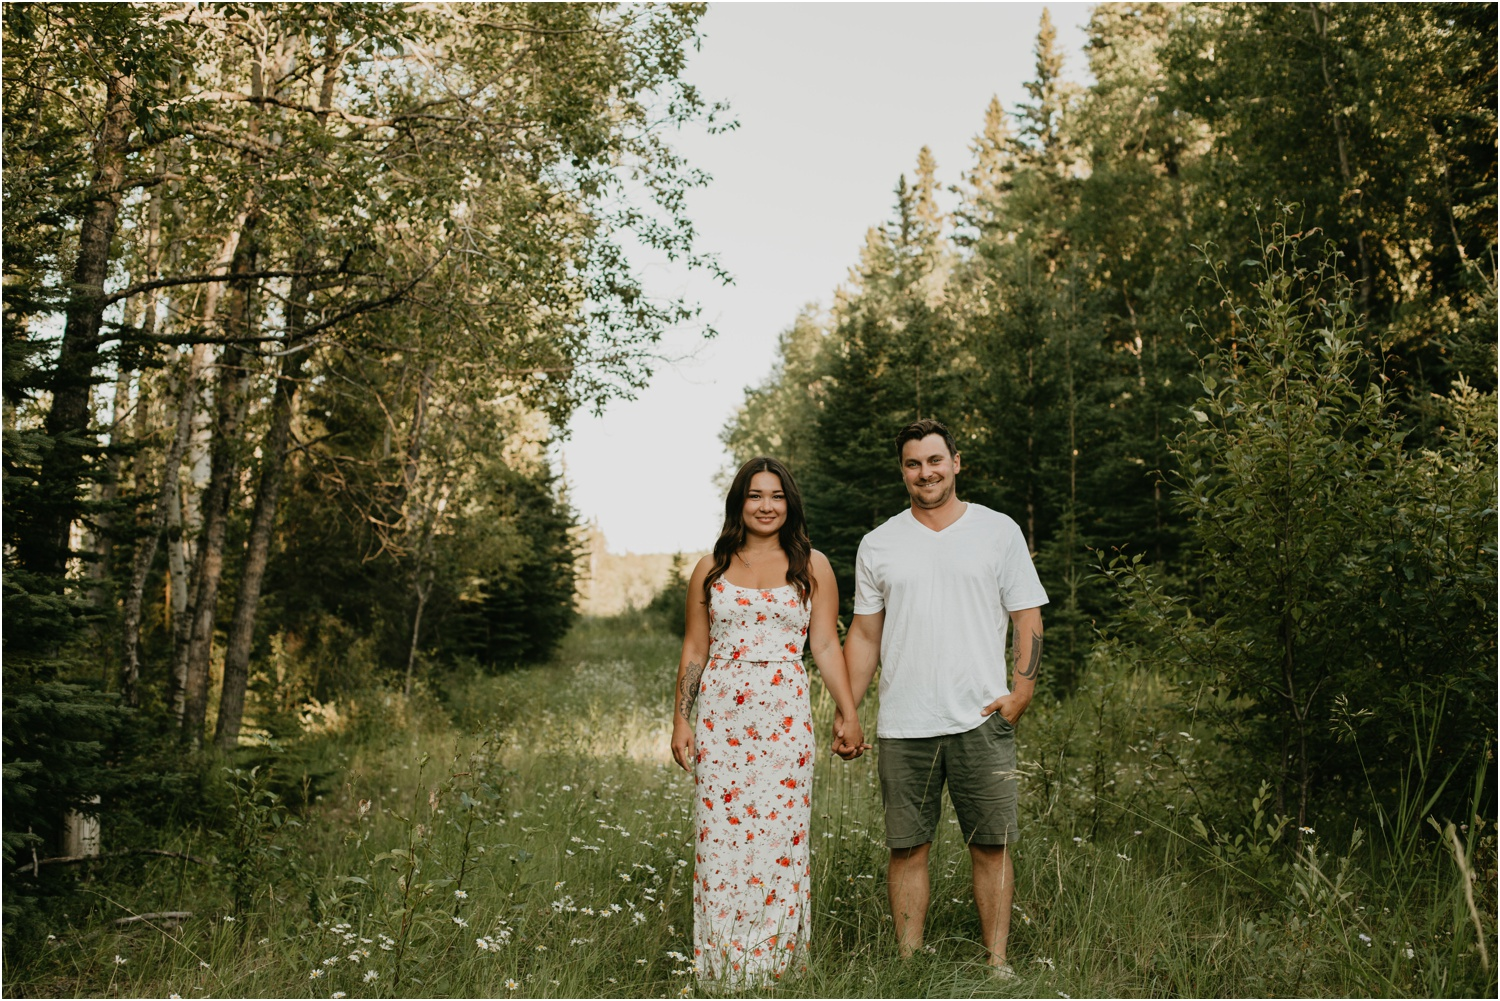 Kimberely BC + Saskatchewan Wedding Photographer Waskesiu Wedding Photographer Elk Ridge Resort Photographer,Kimberley bc photographer,east kootenay photographer,saskatchewan wedding photography,